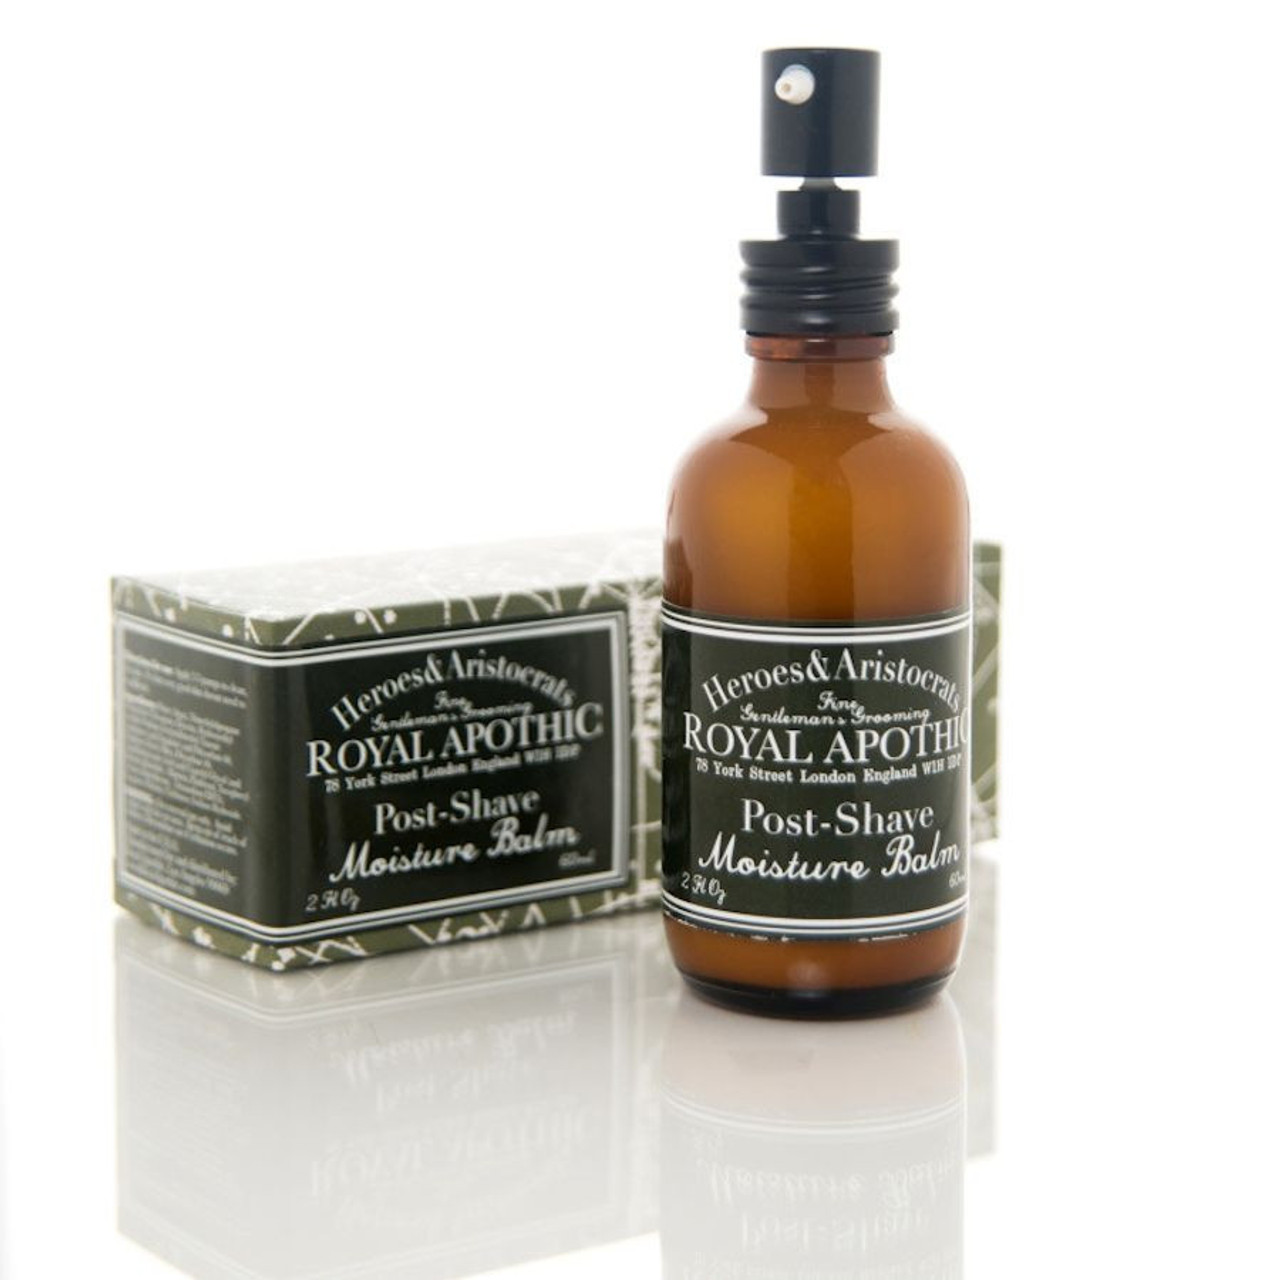 Royal Apothic After Shave Balm